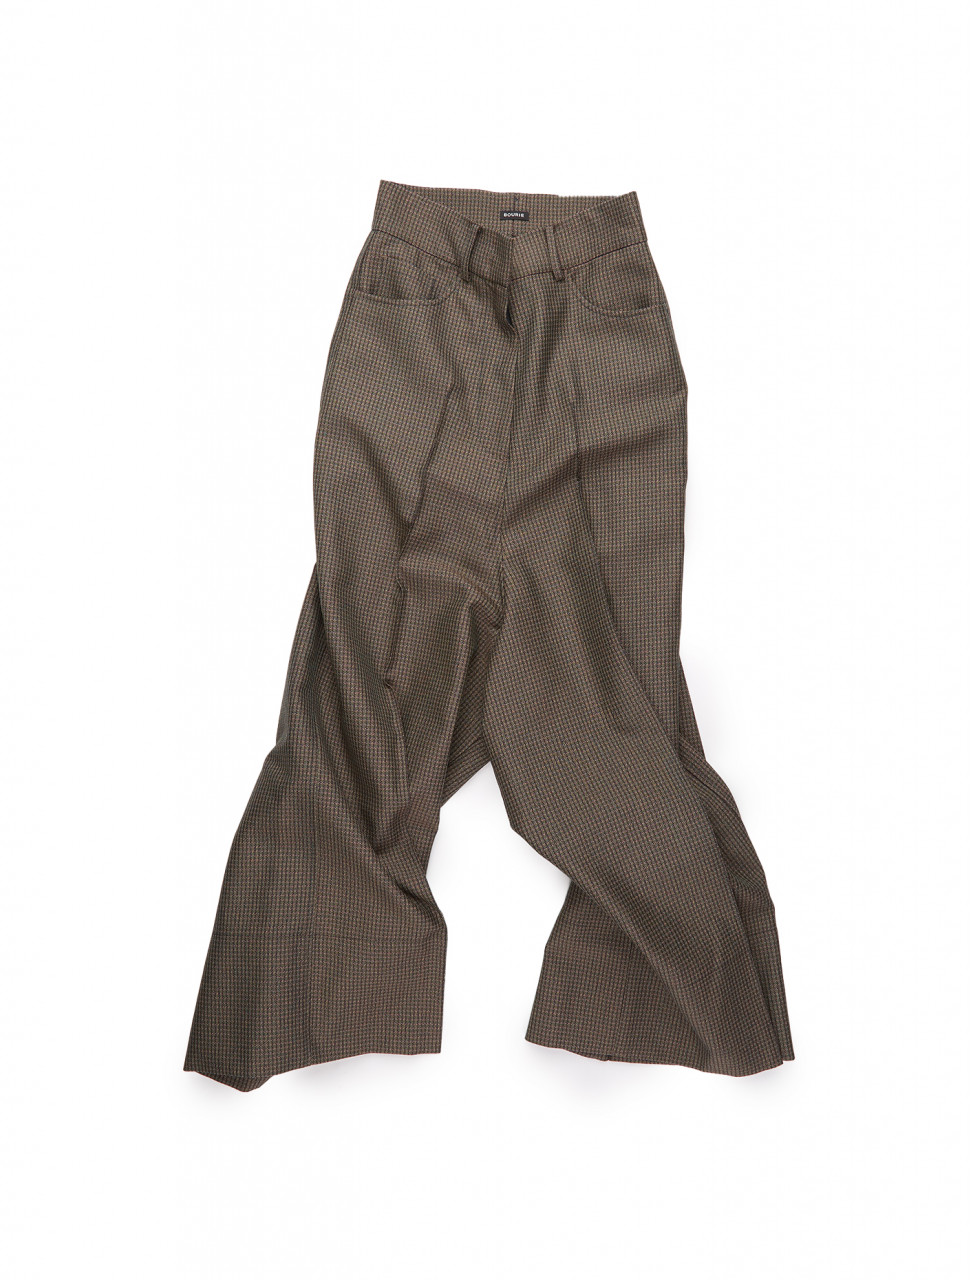 351-BC20FWPT08-PG BOURIE PINTUCK WOODY PANTS